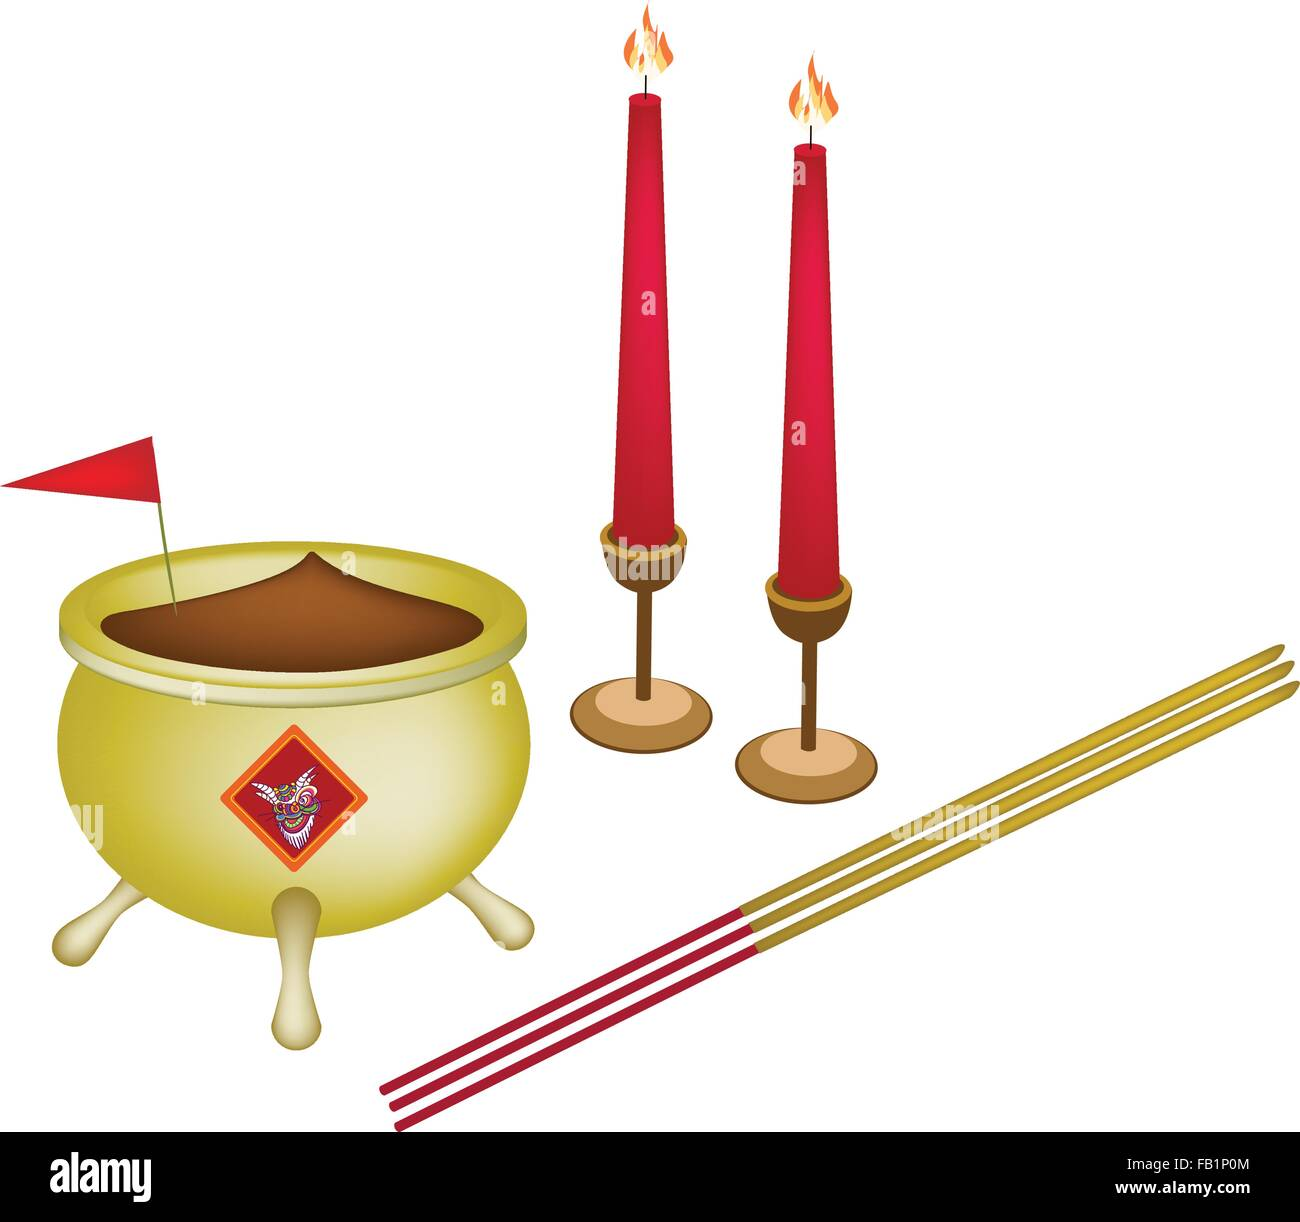 Chinese Cultural Joss Stick Pots Or Chinese Incense Burner With Joss Stock Vector Image Art Alamy